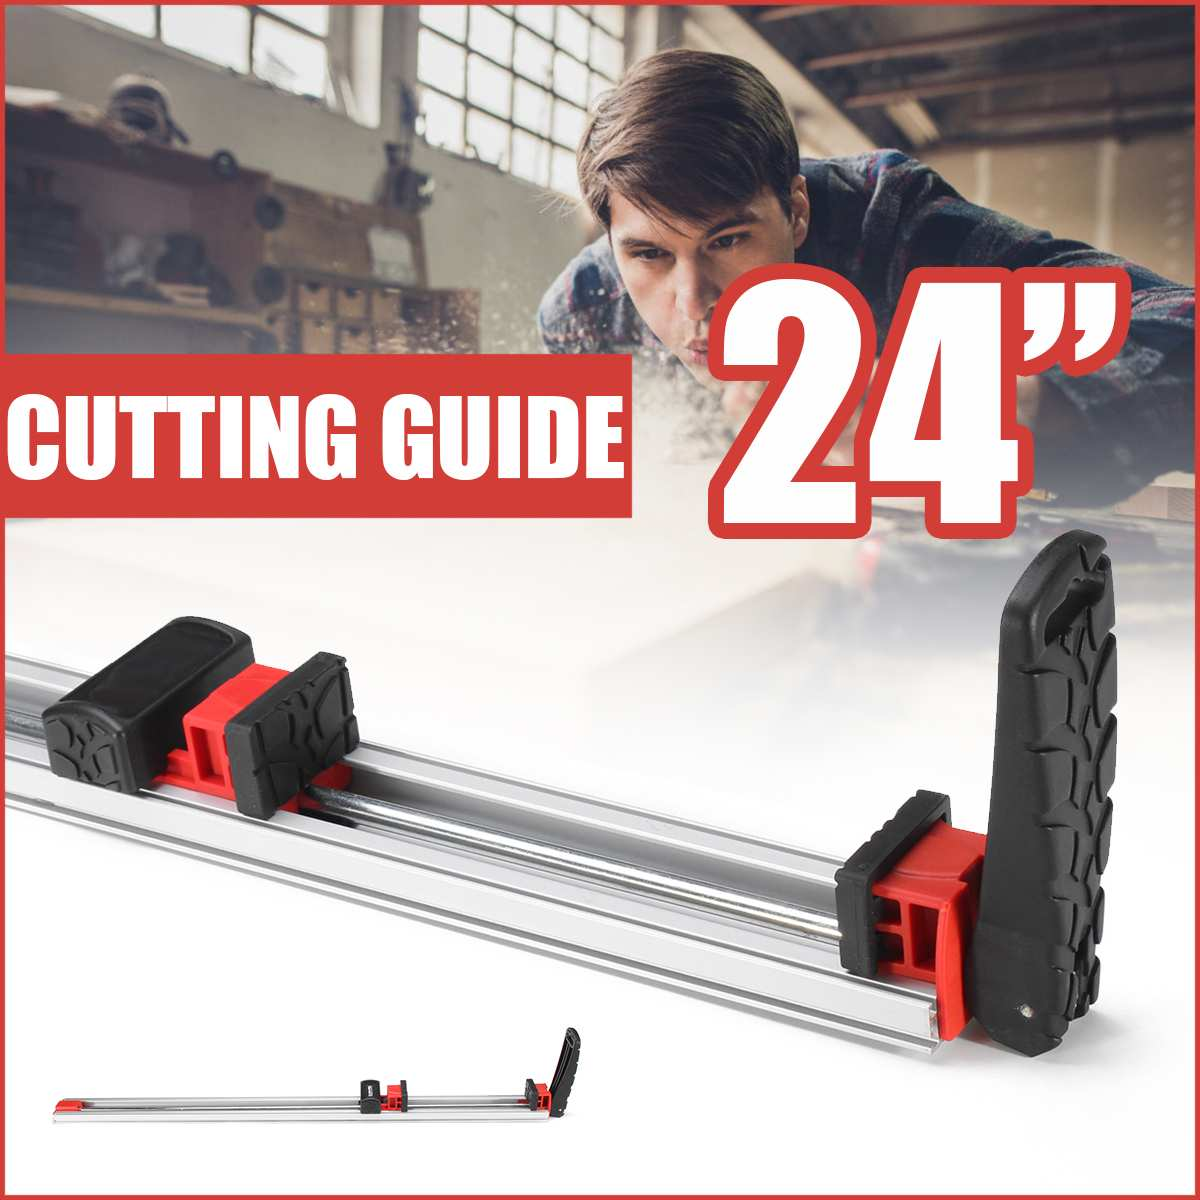 24 Inch Standard Aluminum Alloy Cutting Guide Protractors 620mm DIY Woodworking Table Saw Router Fence Cut Wood Working Tool